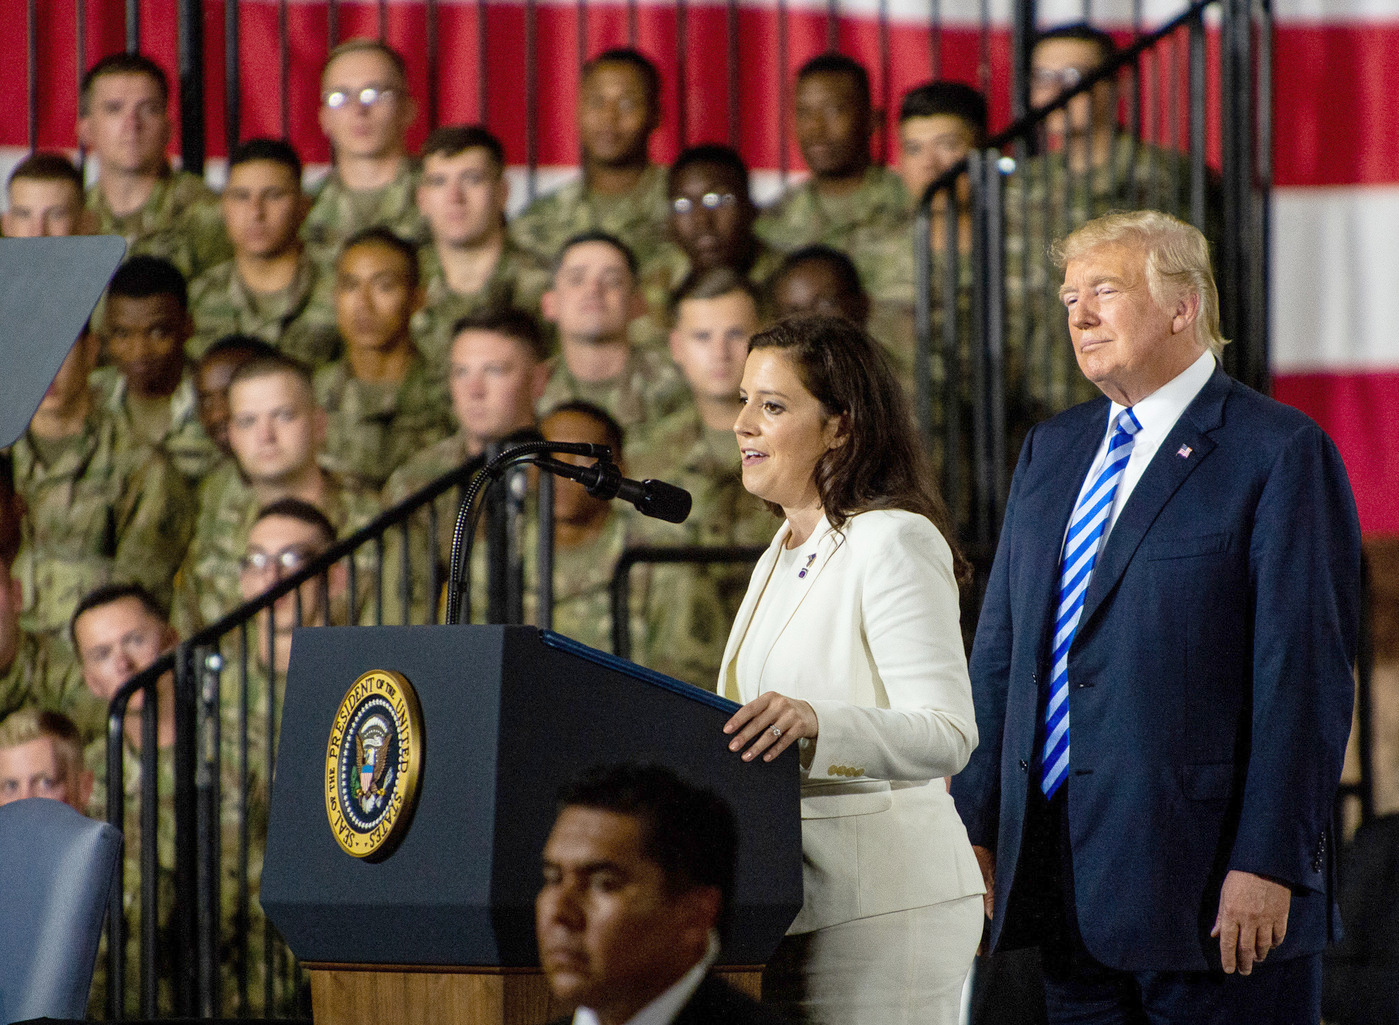 Rep. Elise Stefanik invited President Trump to Fort Drum in 2018. File photo: courtesy of Watertown Daily Times